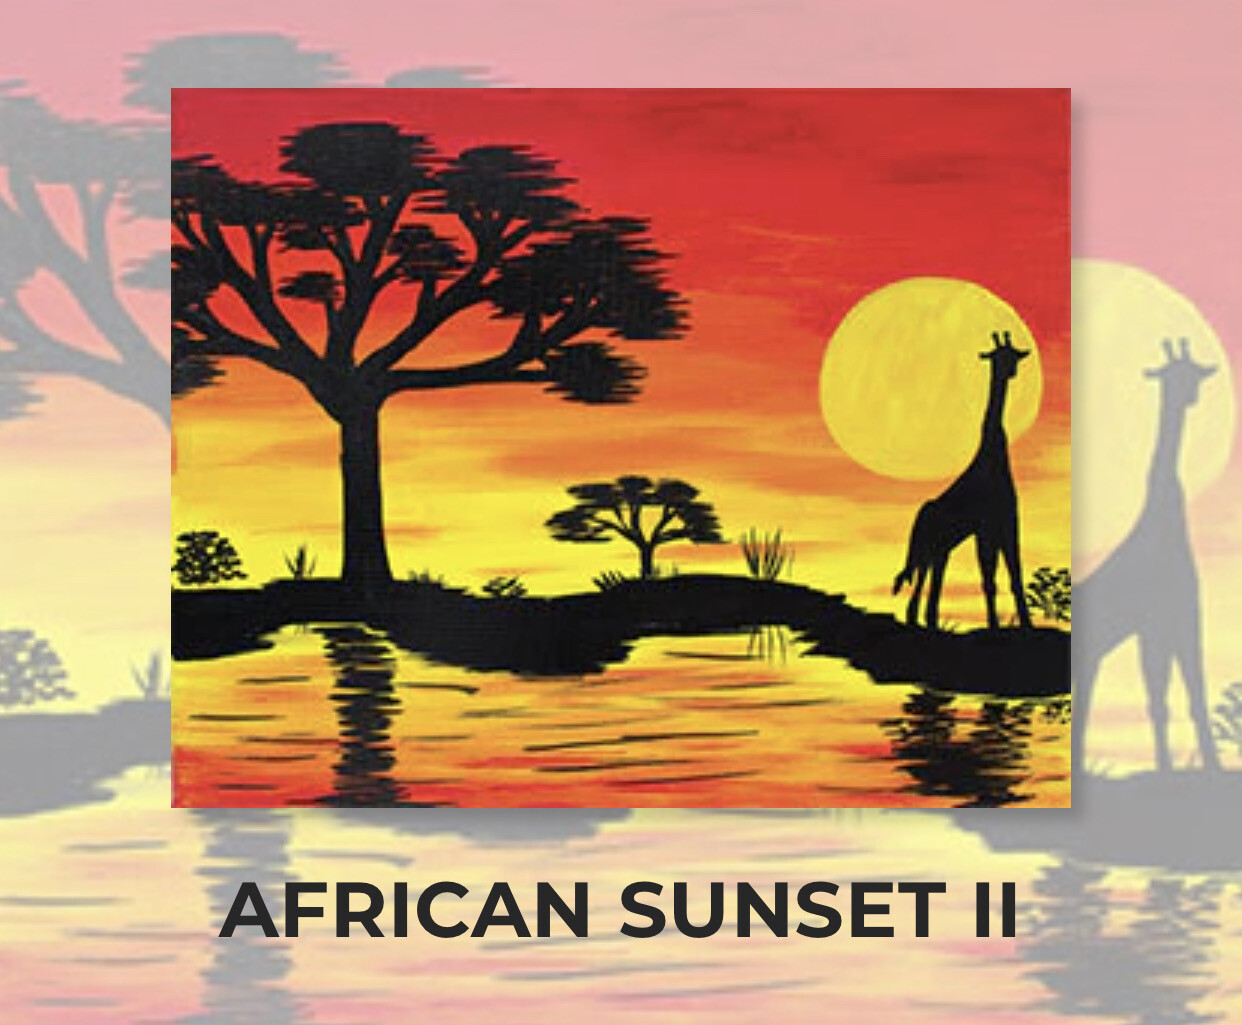 African Sunset II ADULT Acrylic Paint On Canvas DIY Art Kit